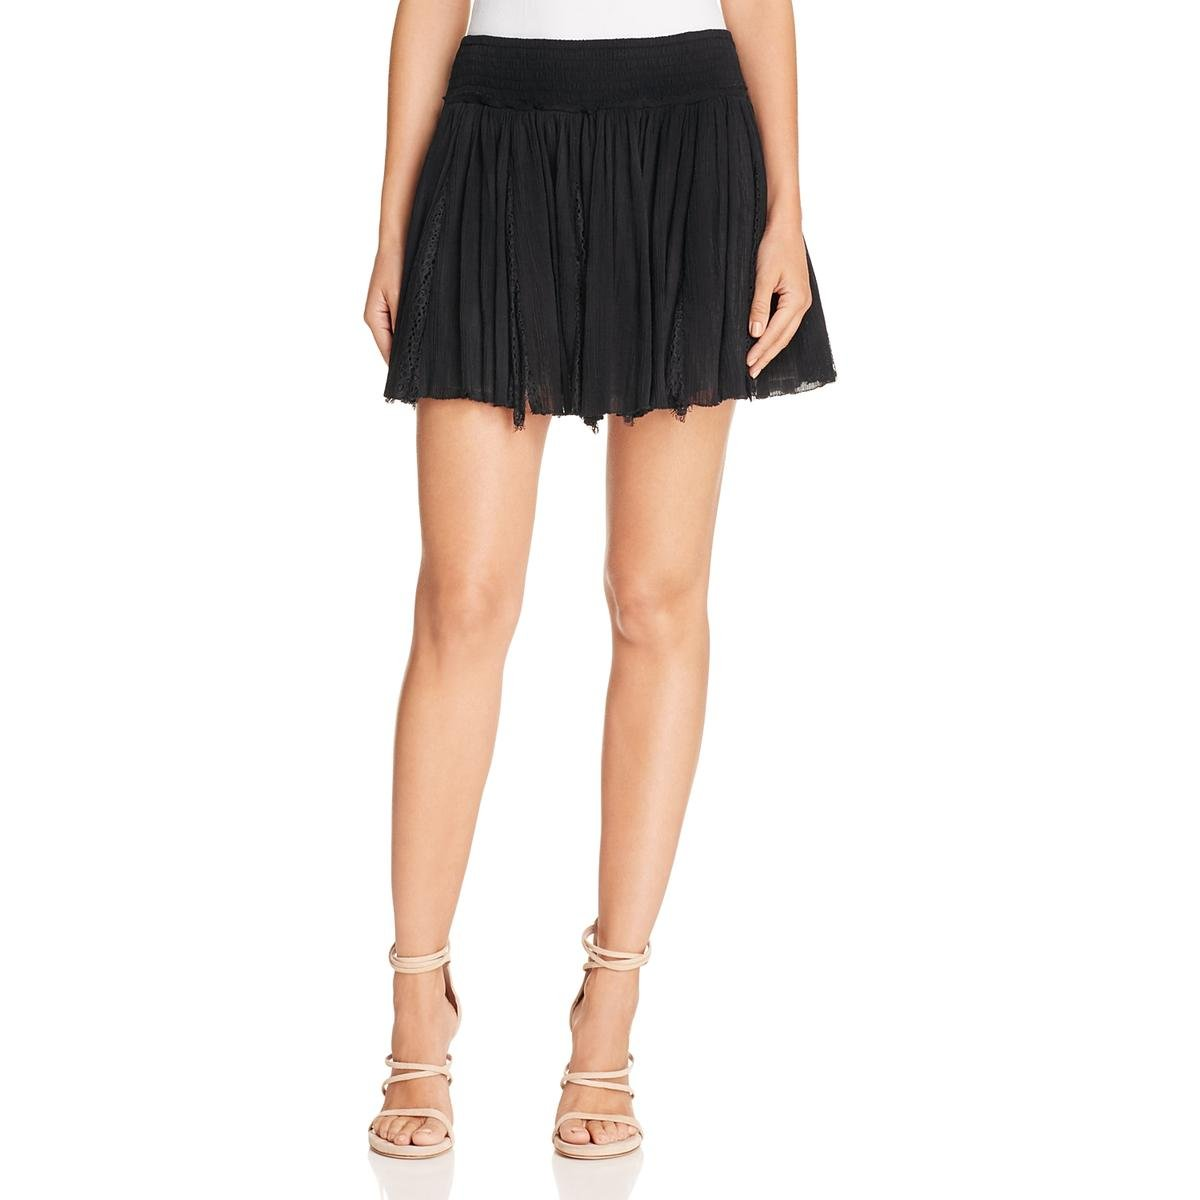 Love Sam Womens Lace Pull On Flare Skirt Black L